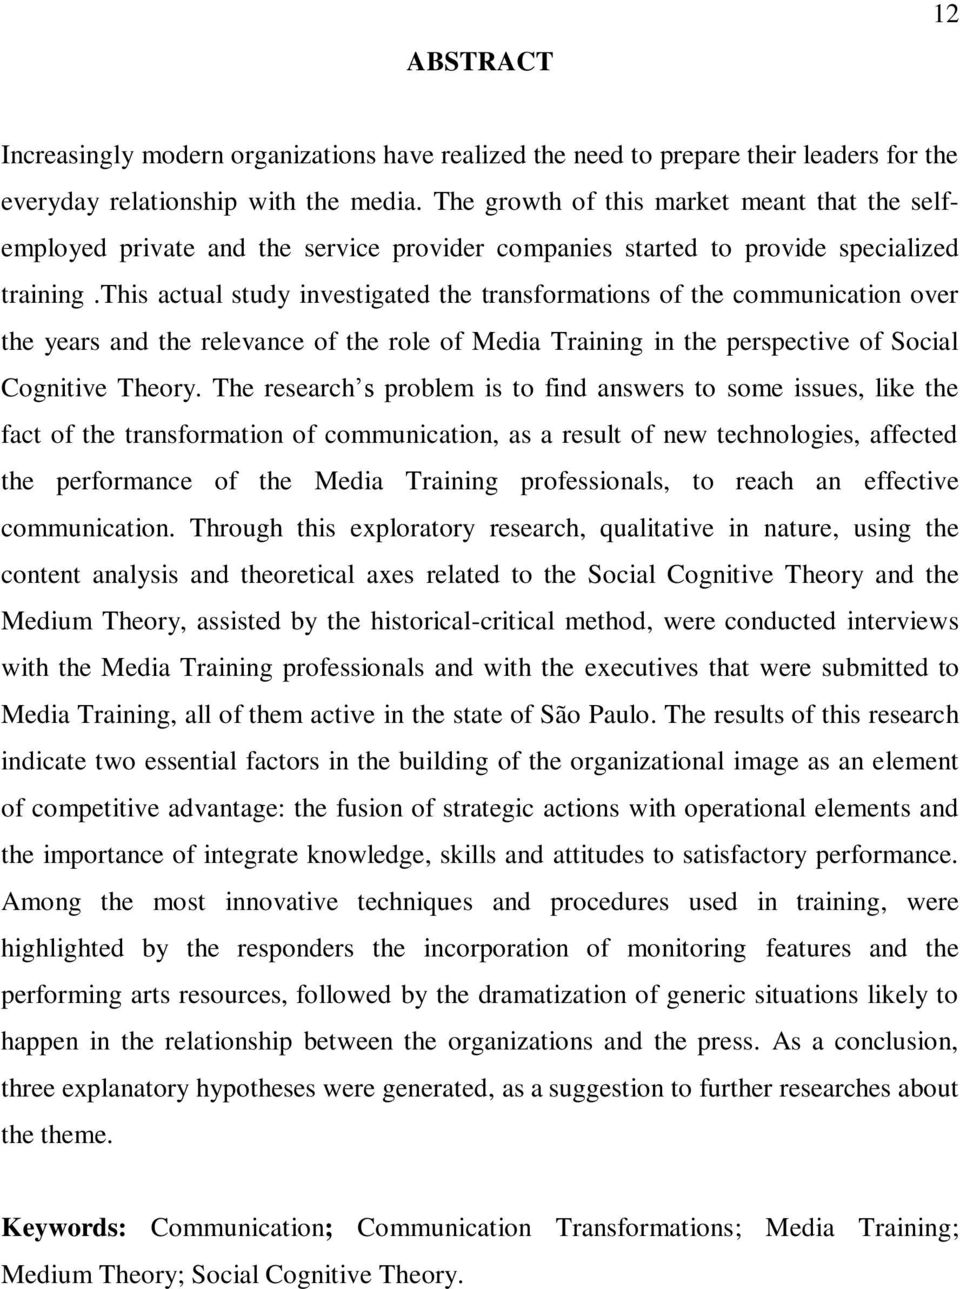 this actual study investigated the transformations of the communication over the years and the relevance of the role of Media Training in the perspective of Social Cognitive Theory.